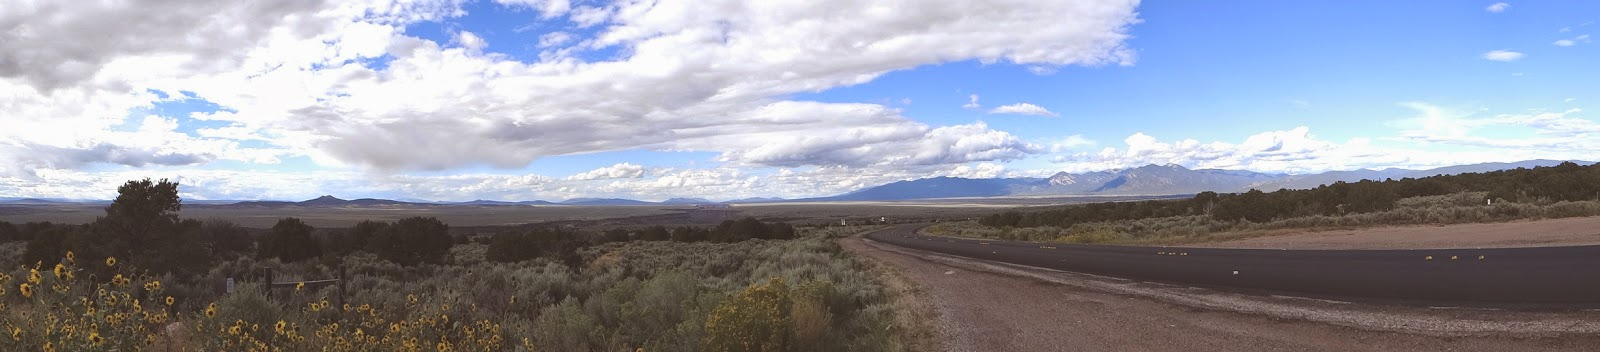 180 Panoramic of the Taos Valley